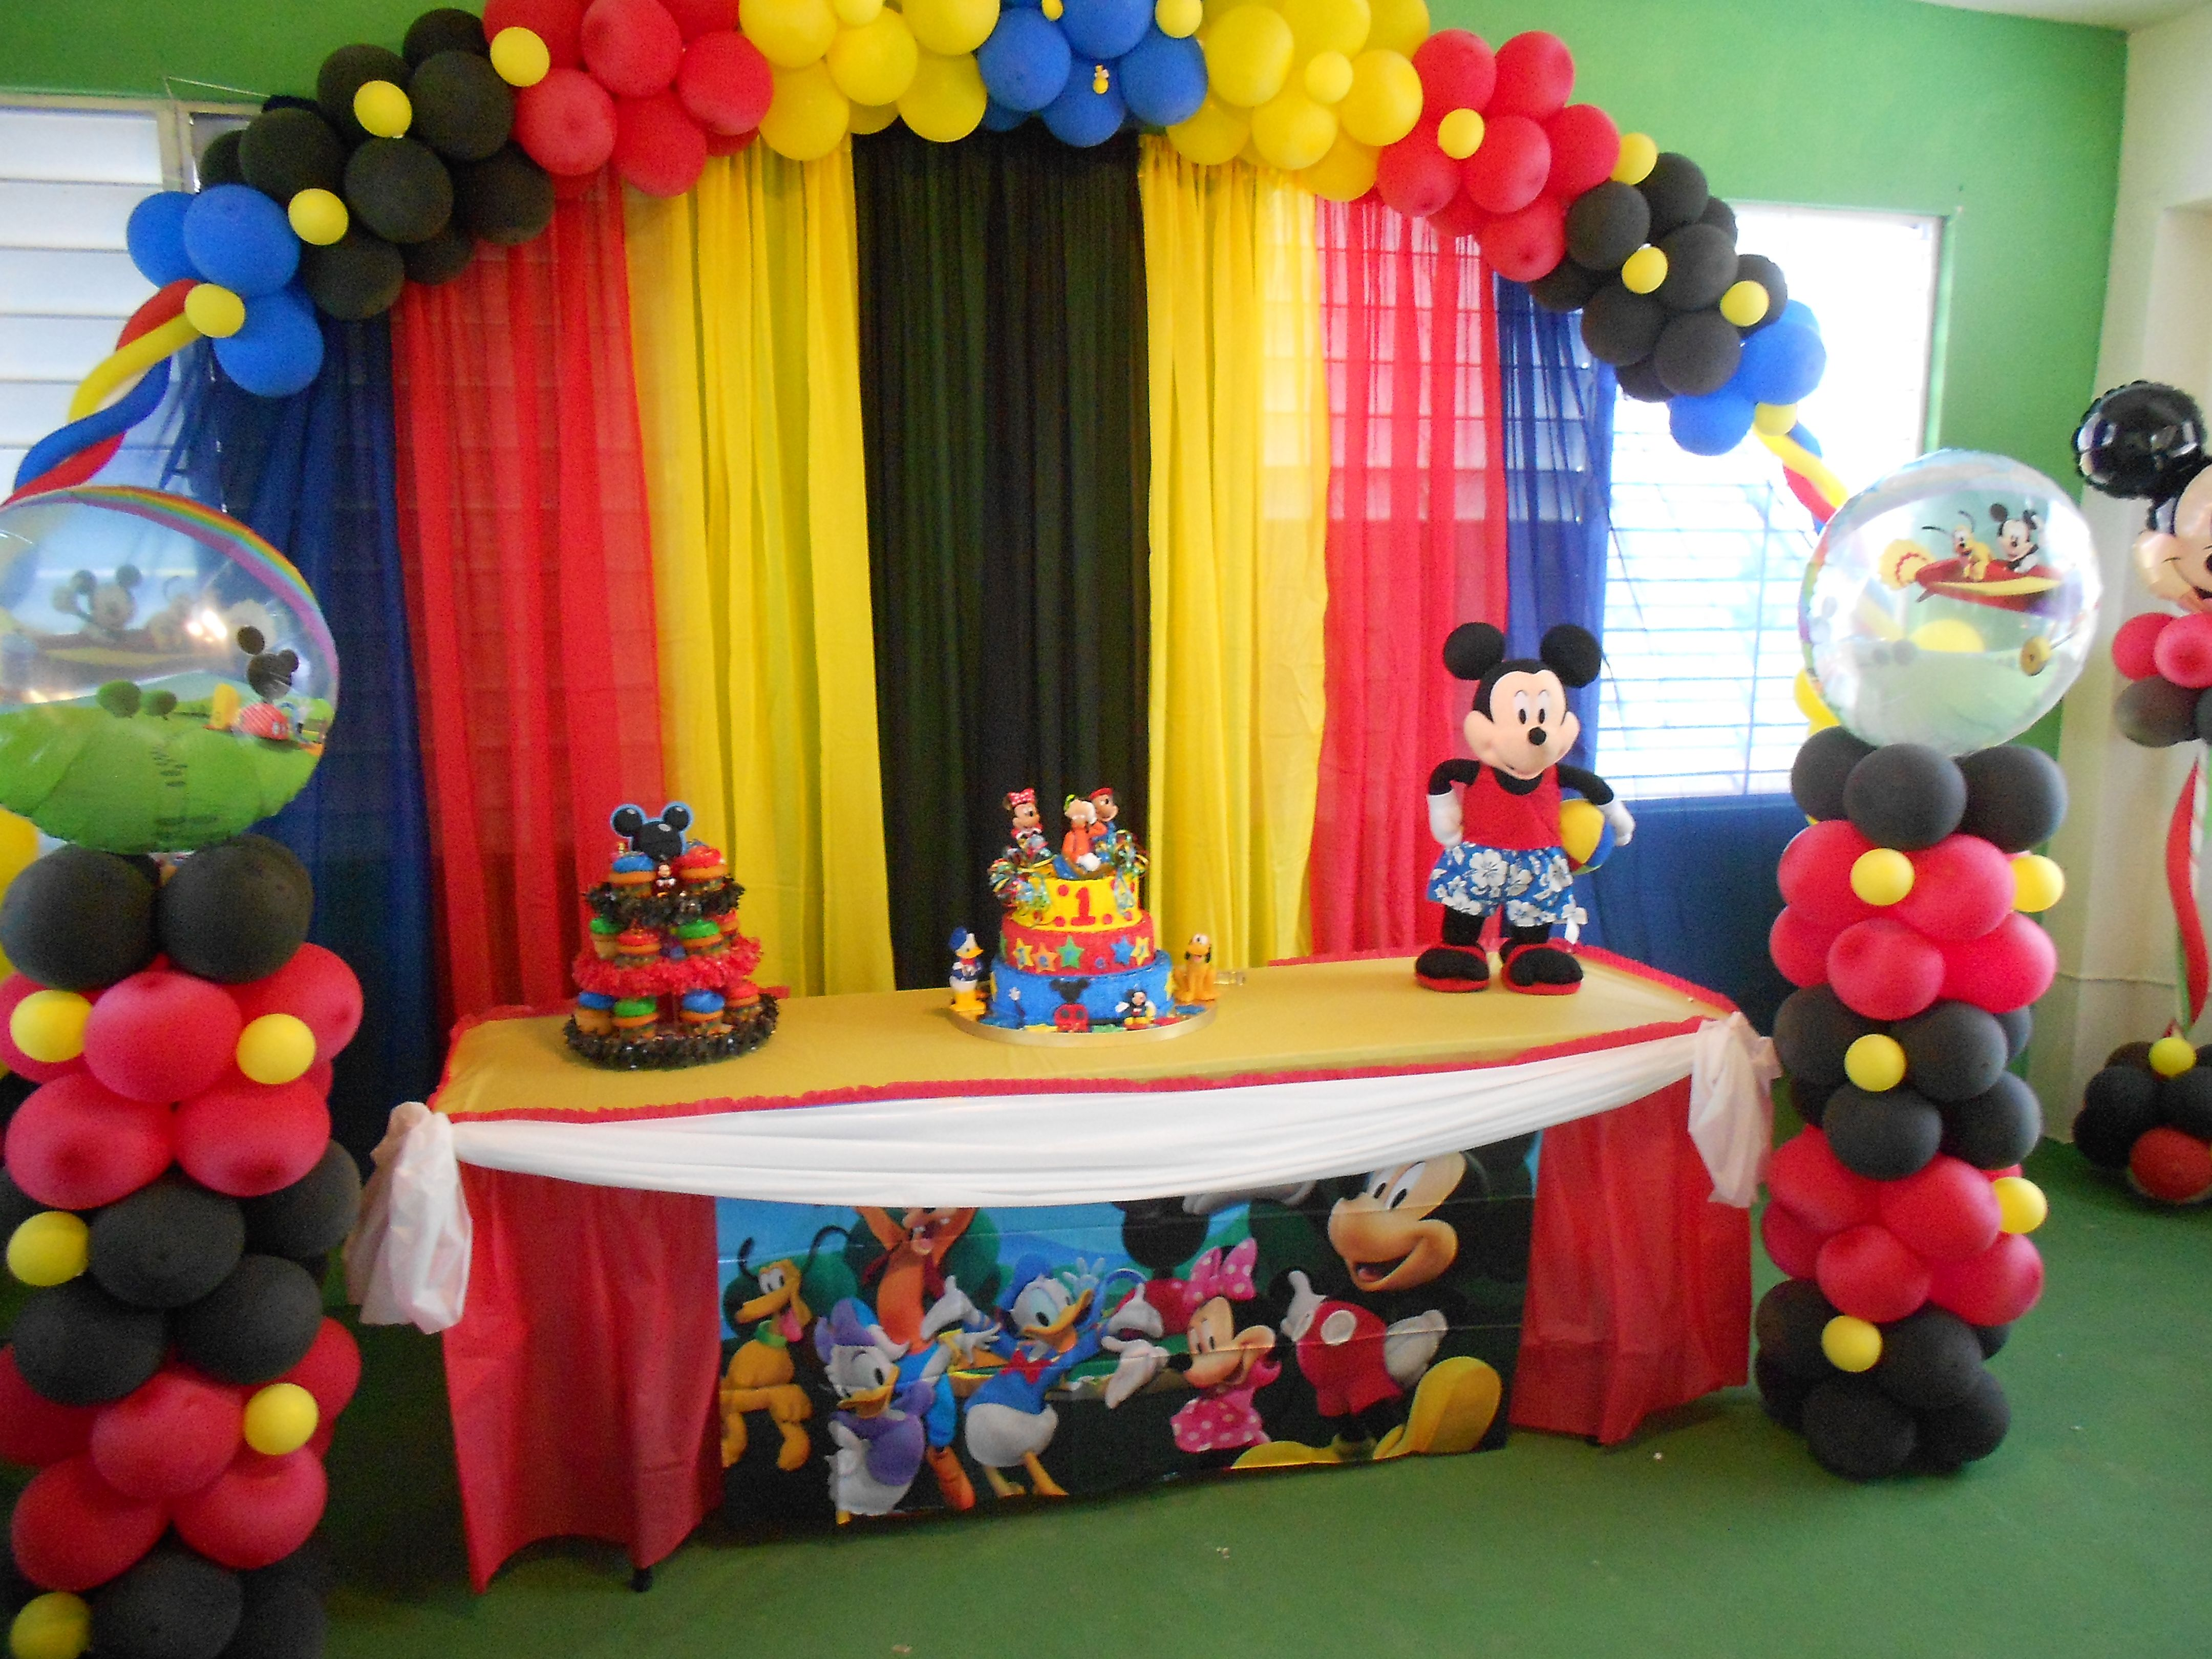 Decoraciones Infantiles De Mickey Mesa Prinsipal Fiestaideas Decoracion Mickey